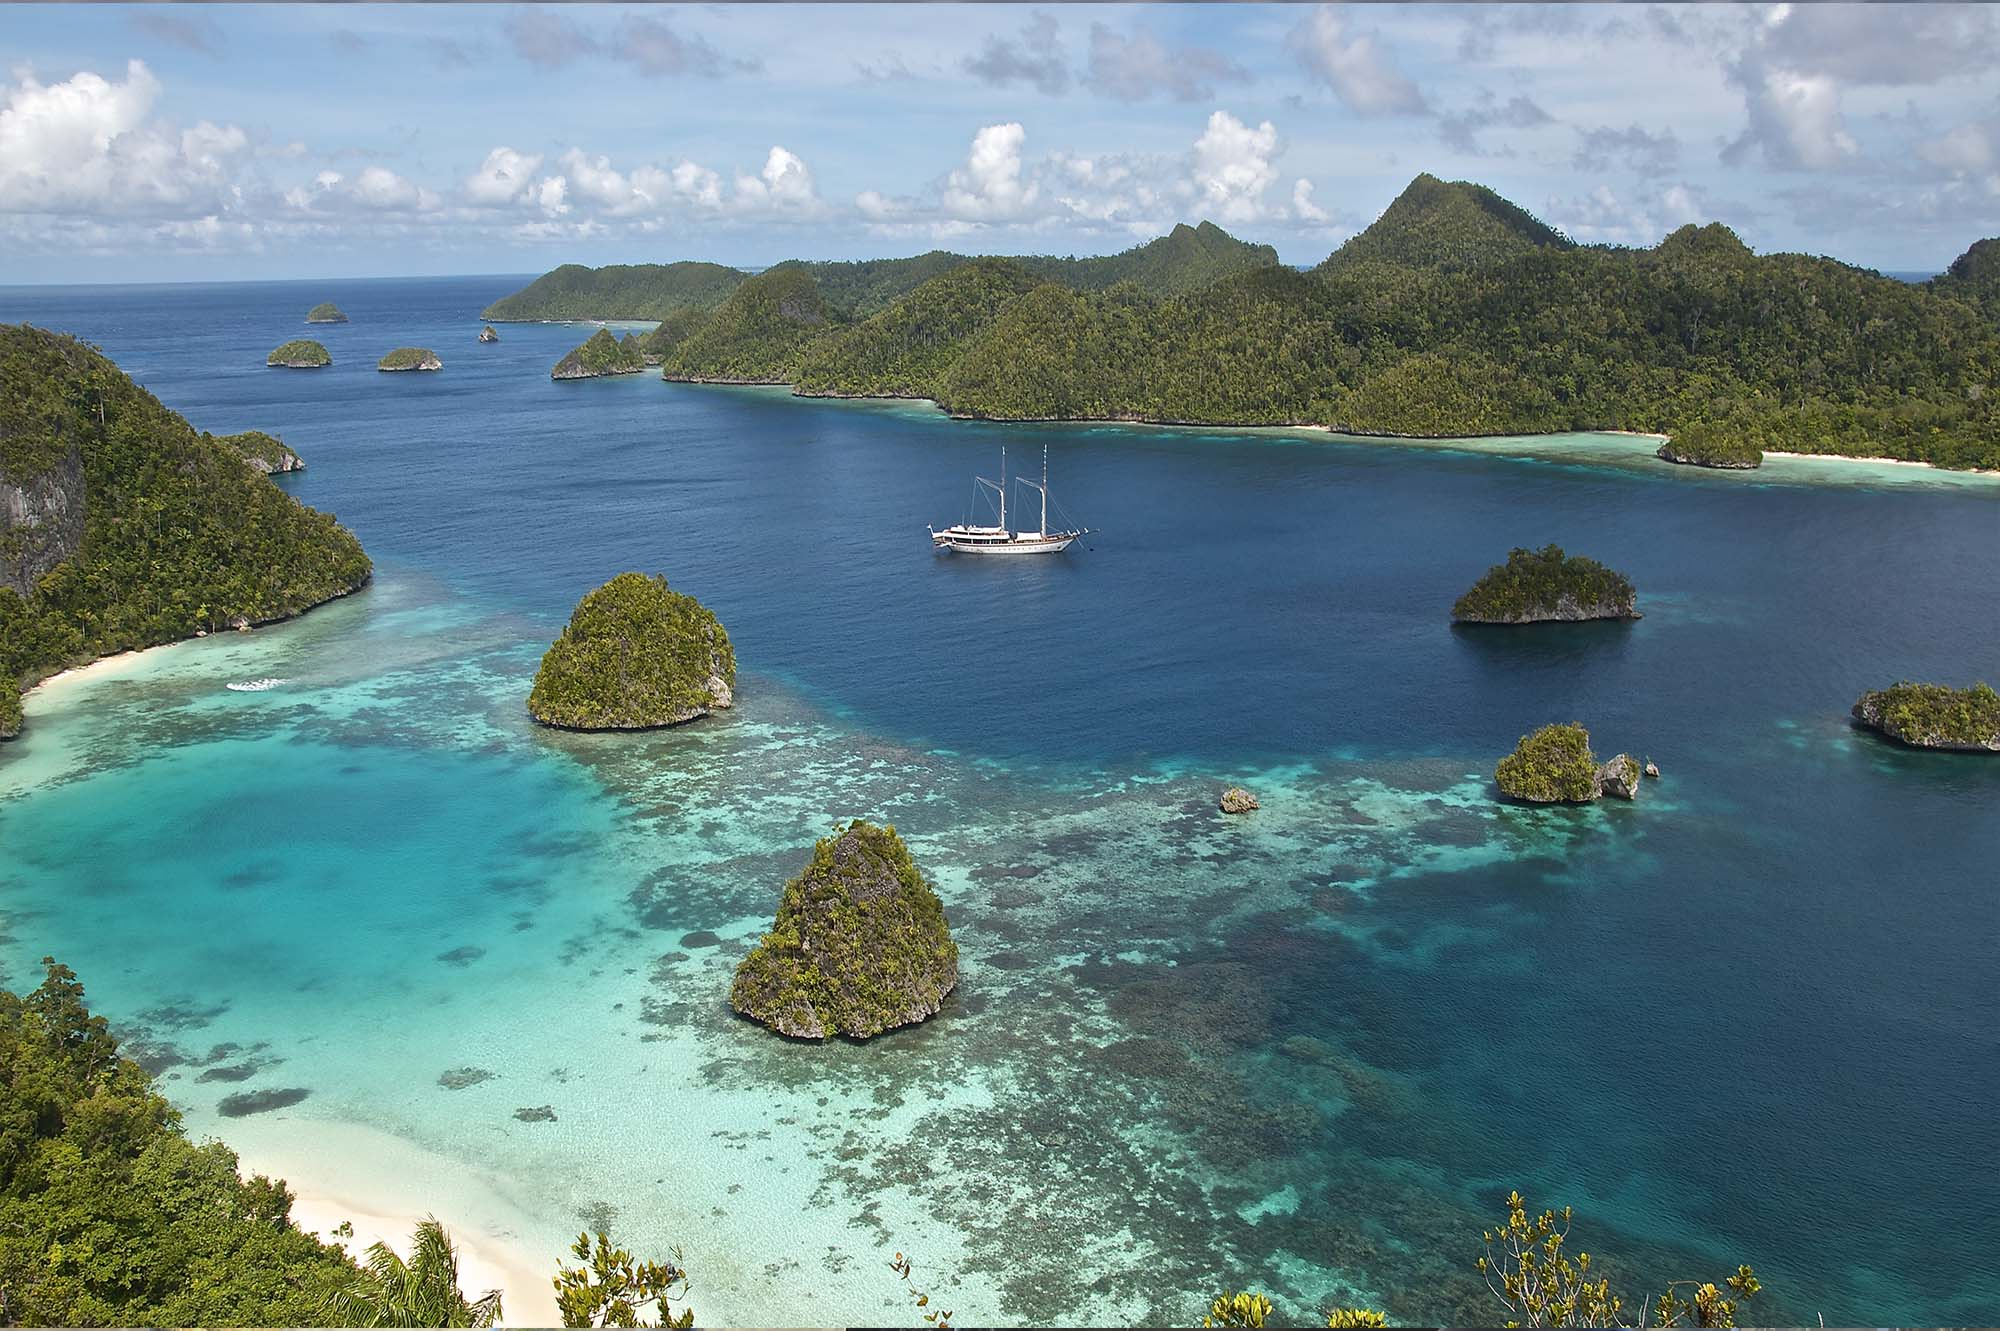 Yacht Zen is available for private luxury sailing charters to the most exotic Asia destinations, offering you the unique possibility to explore the stunning islands and coral of the South East Asia in adventurous luxury holidays.